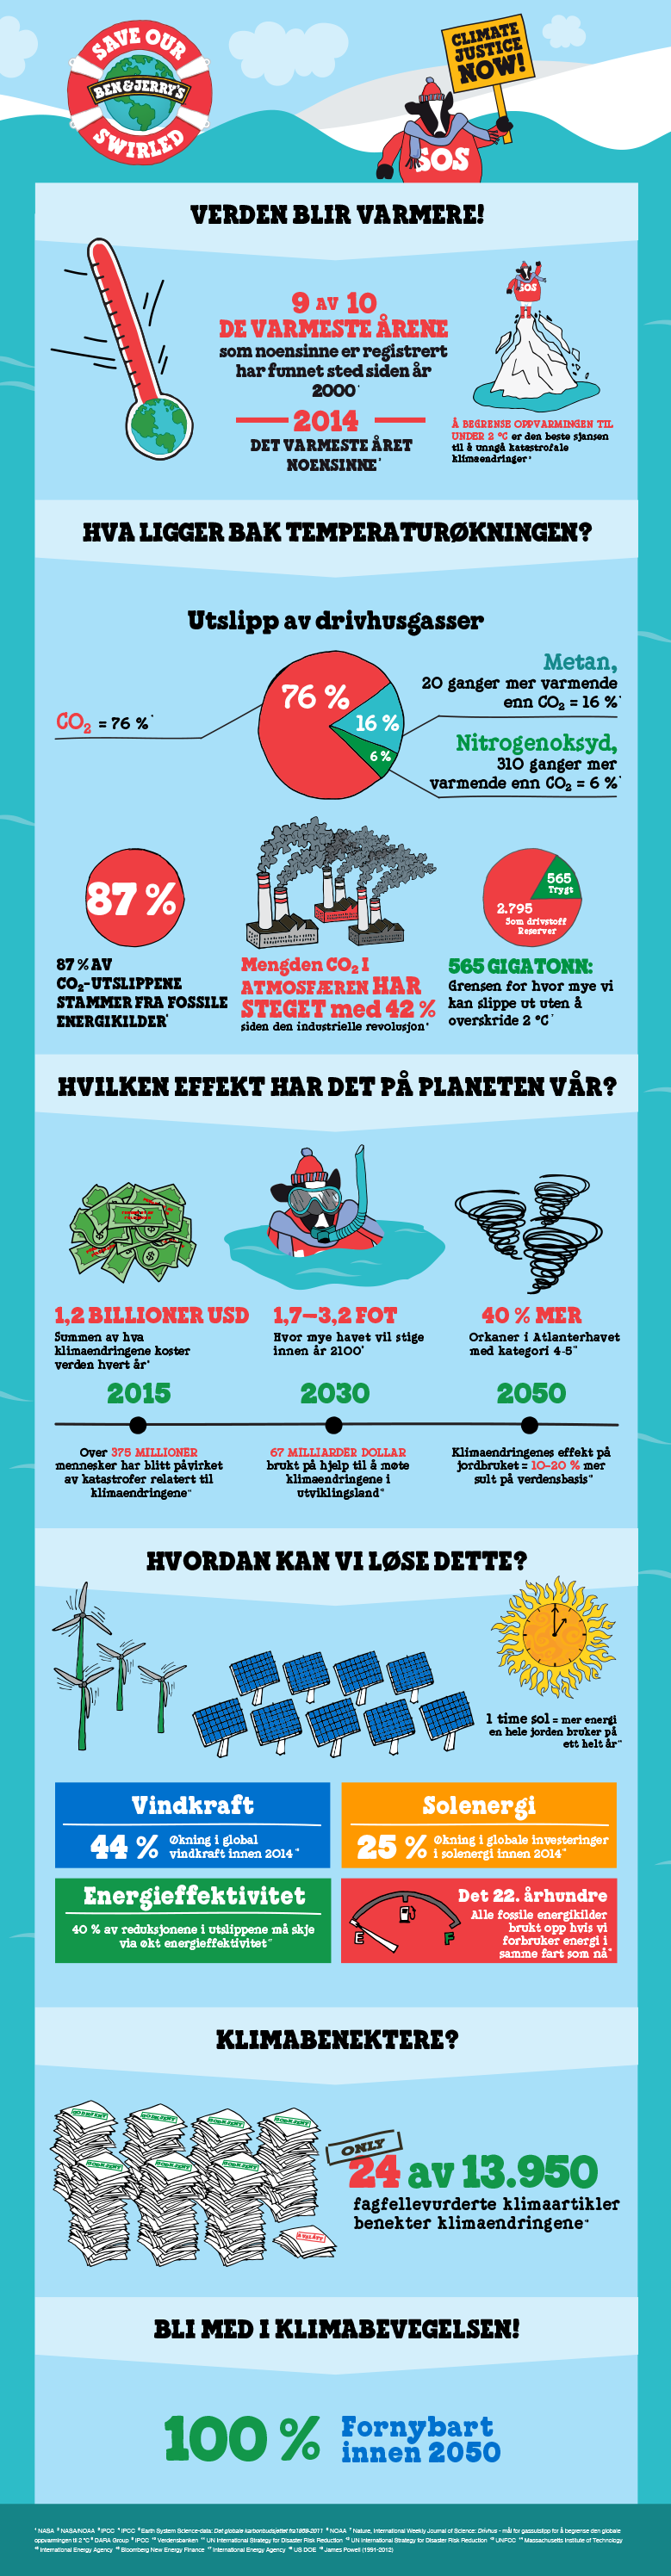 BJ_ClimateChange_Infographic_Norwegian,-Nynorsk-(Norway).png